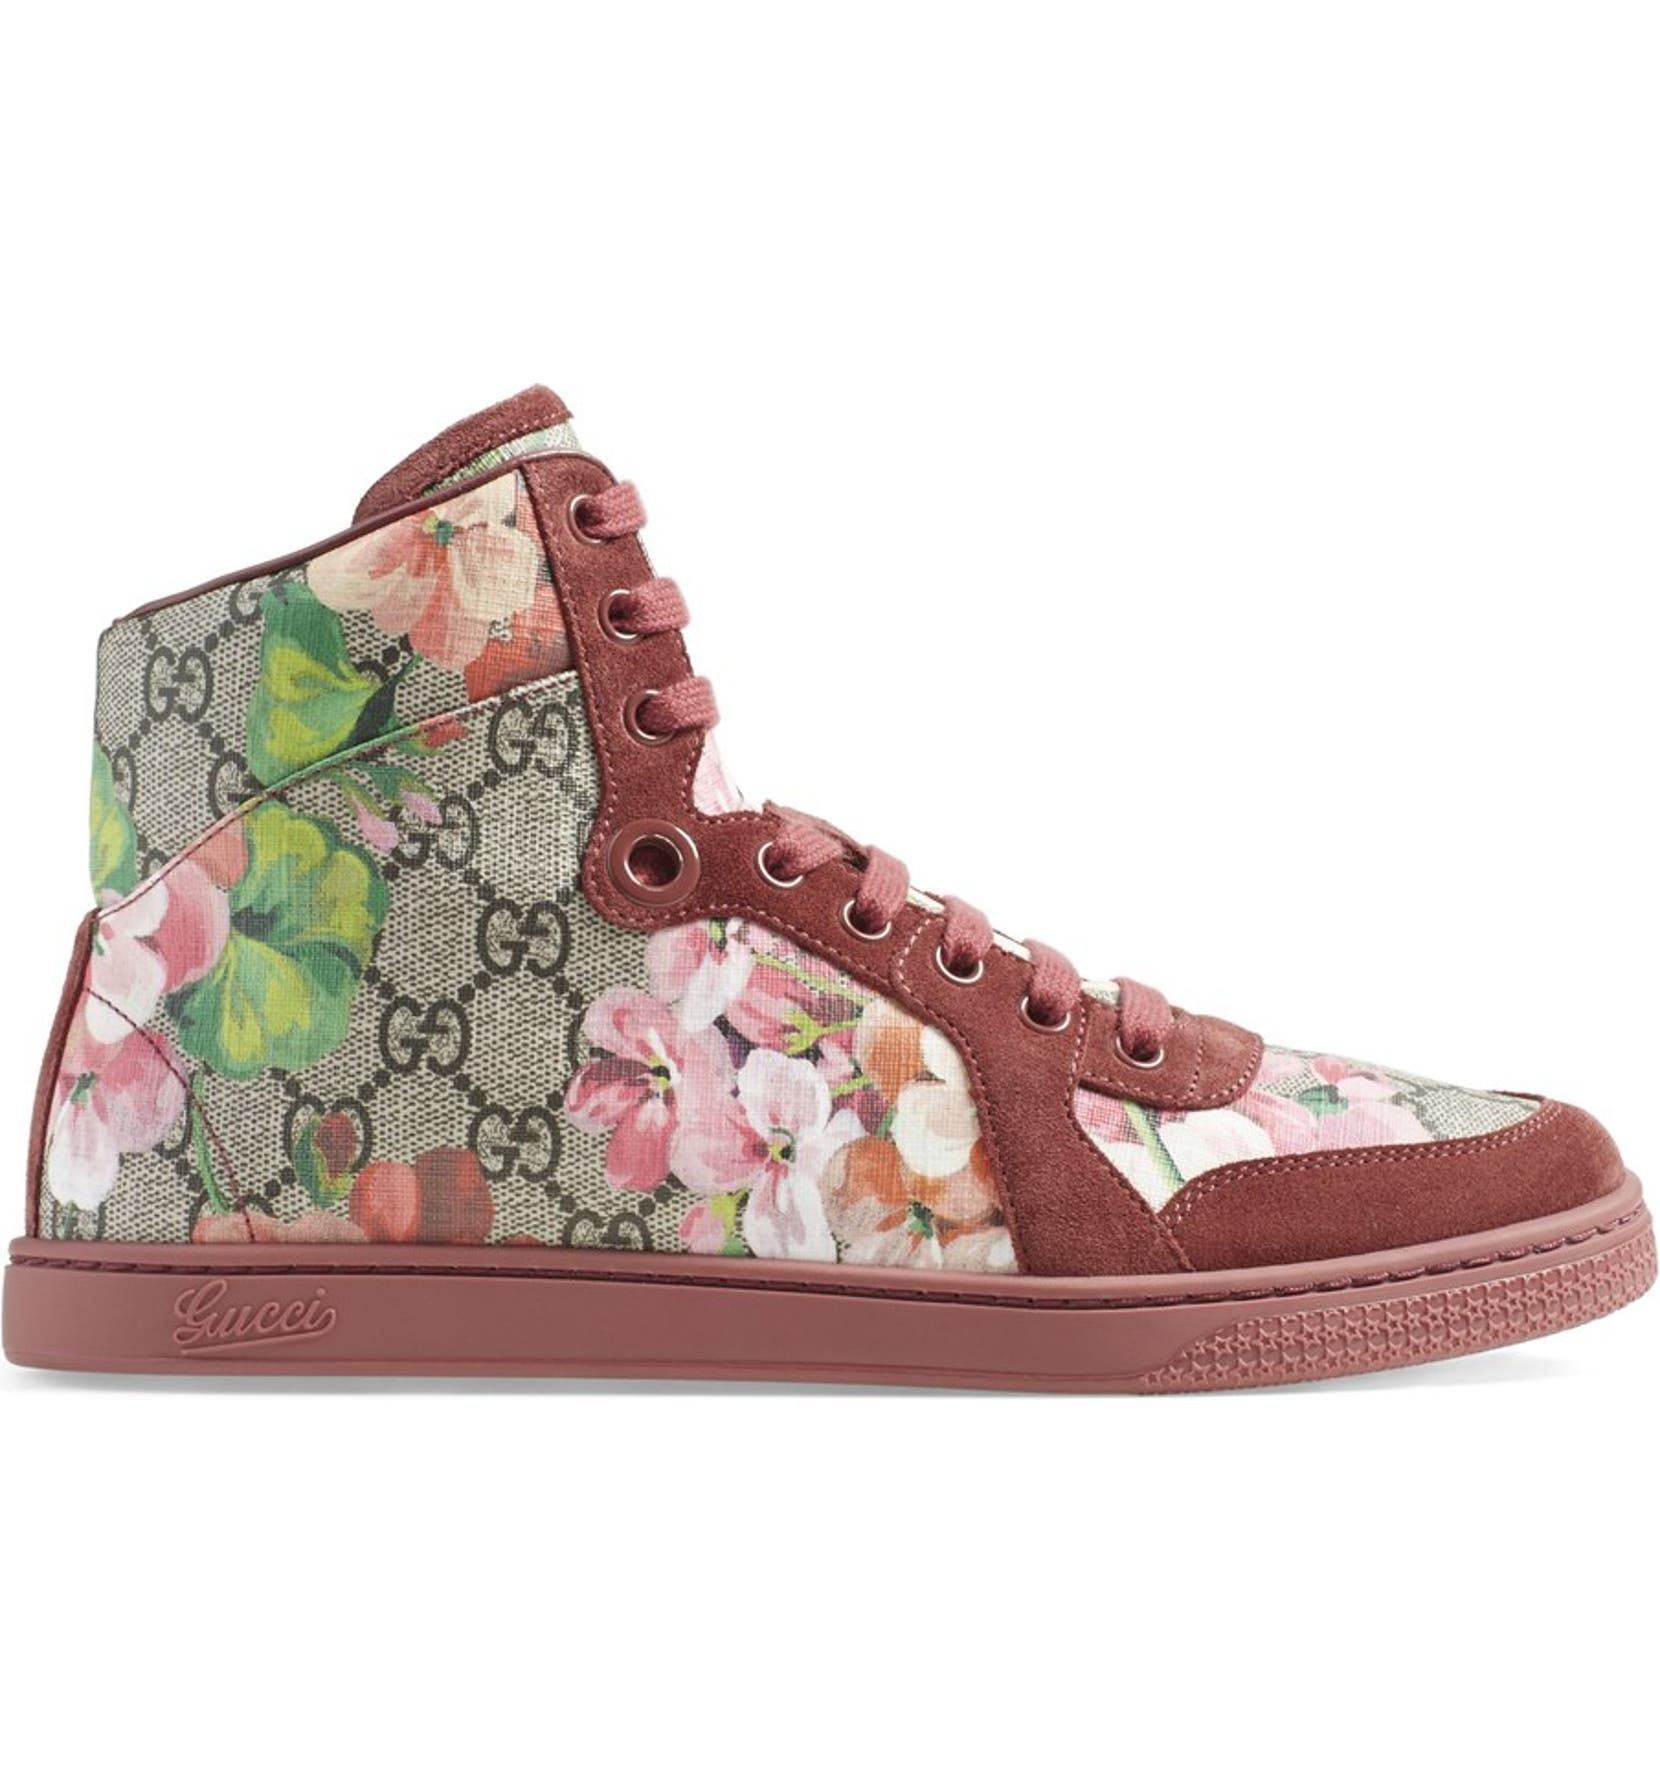 8eab95af8 Gucci 'Coda - Bloom' High Top Sneaker | Nordstrom